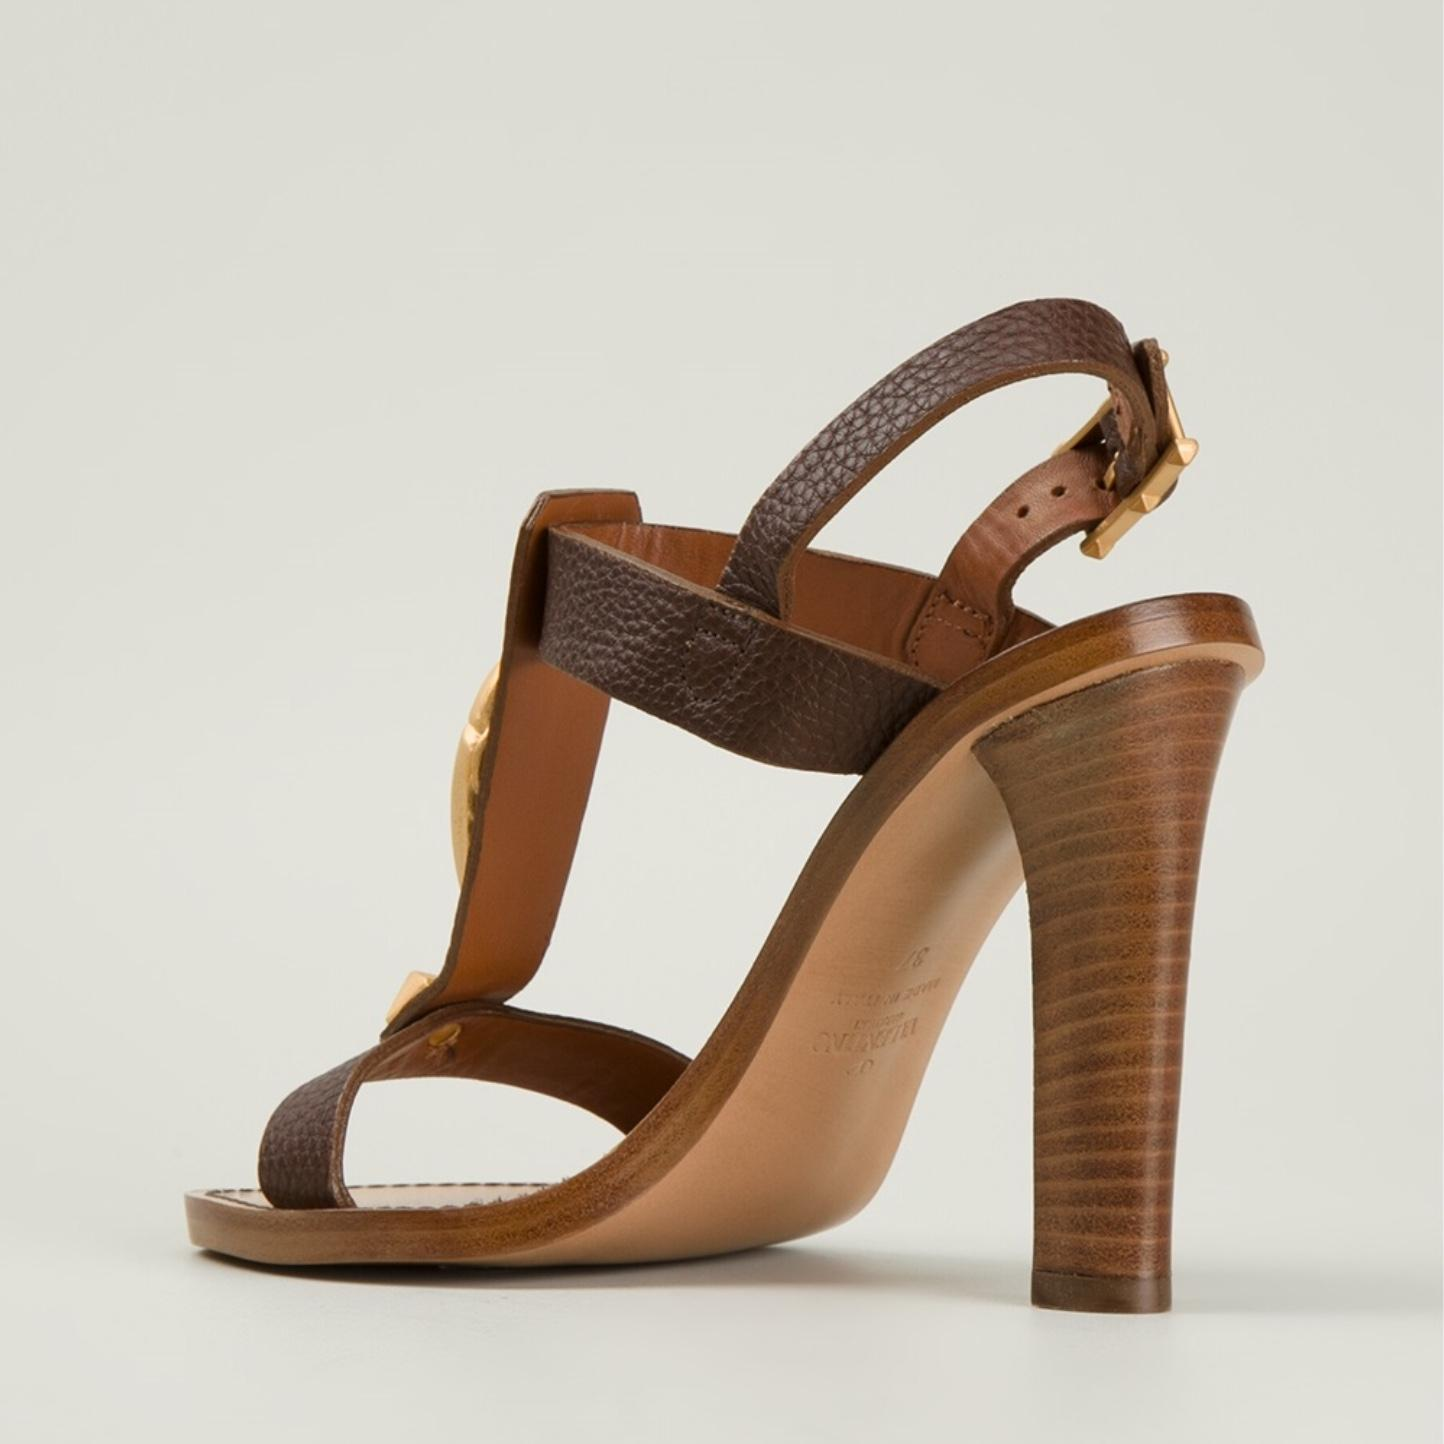 d5a4dfd52cdb ... Valentino Brown Scarab Open-toe Open-toe Open-toe Pebbled Leather  Sandals Size ...